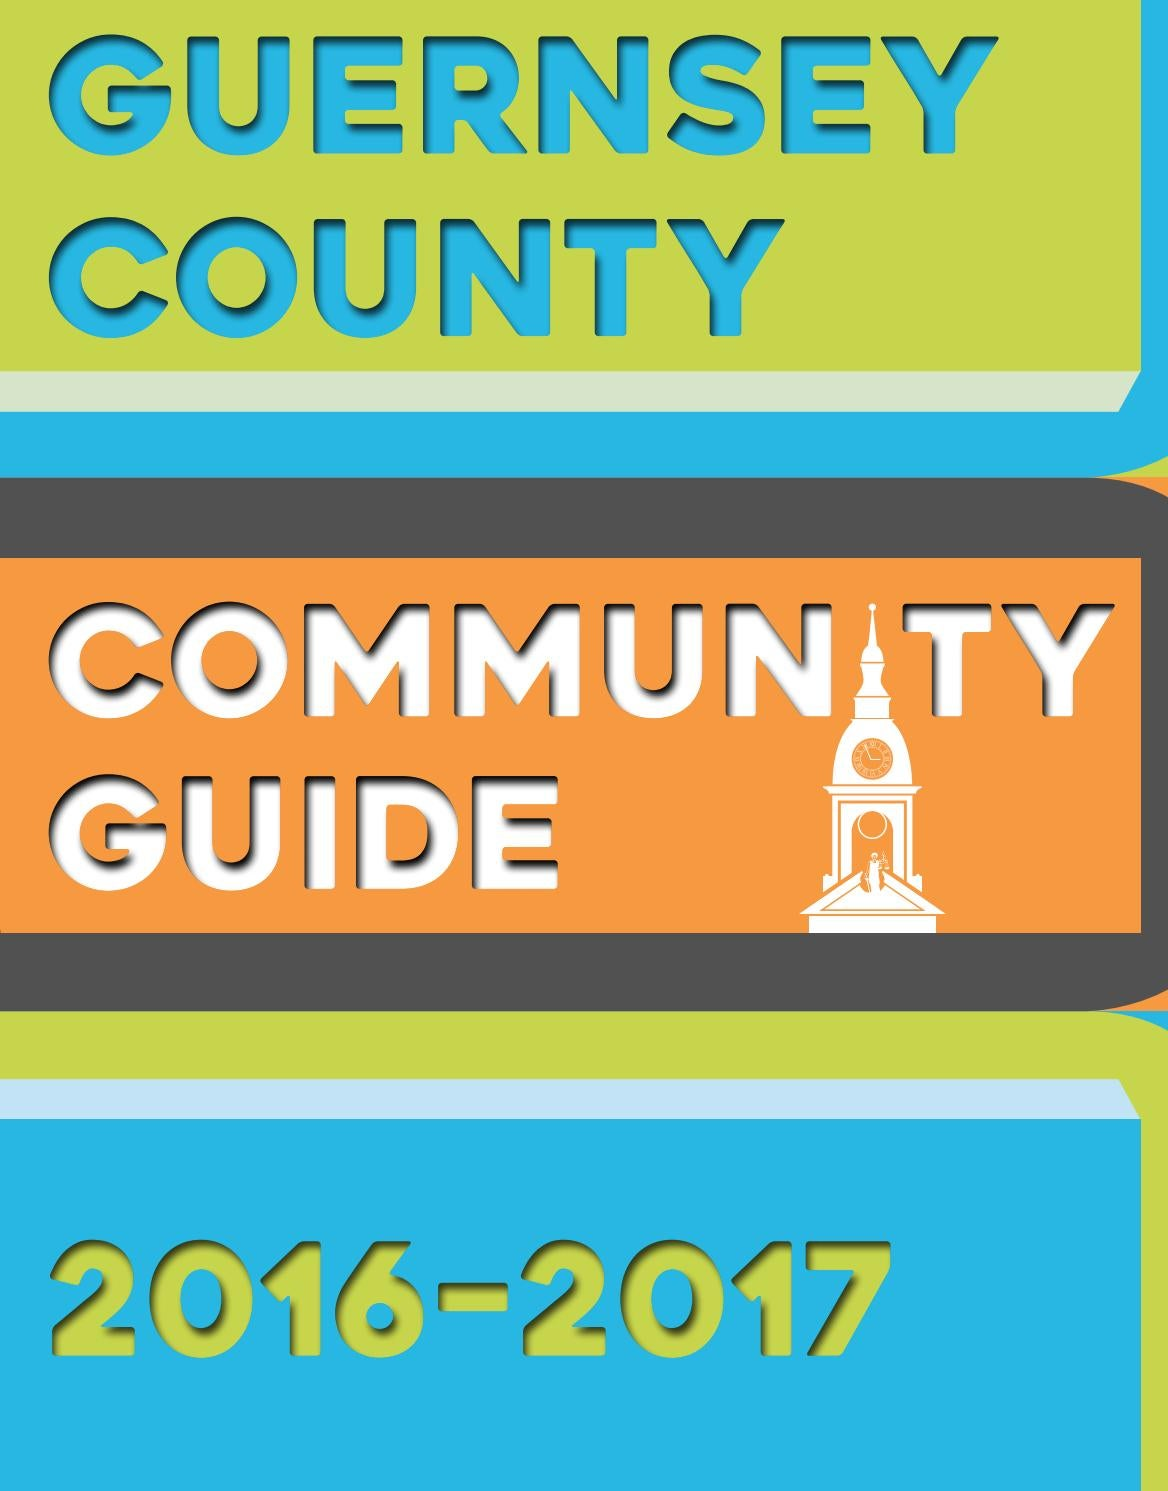 Click to reveal contact information phone 03 9864 1111 fax 03 9864 - Guernsey County Community Guide 2016 2017 By Gatehouse Media Neo Issuu